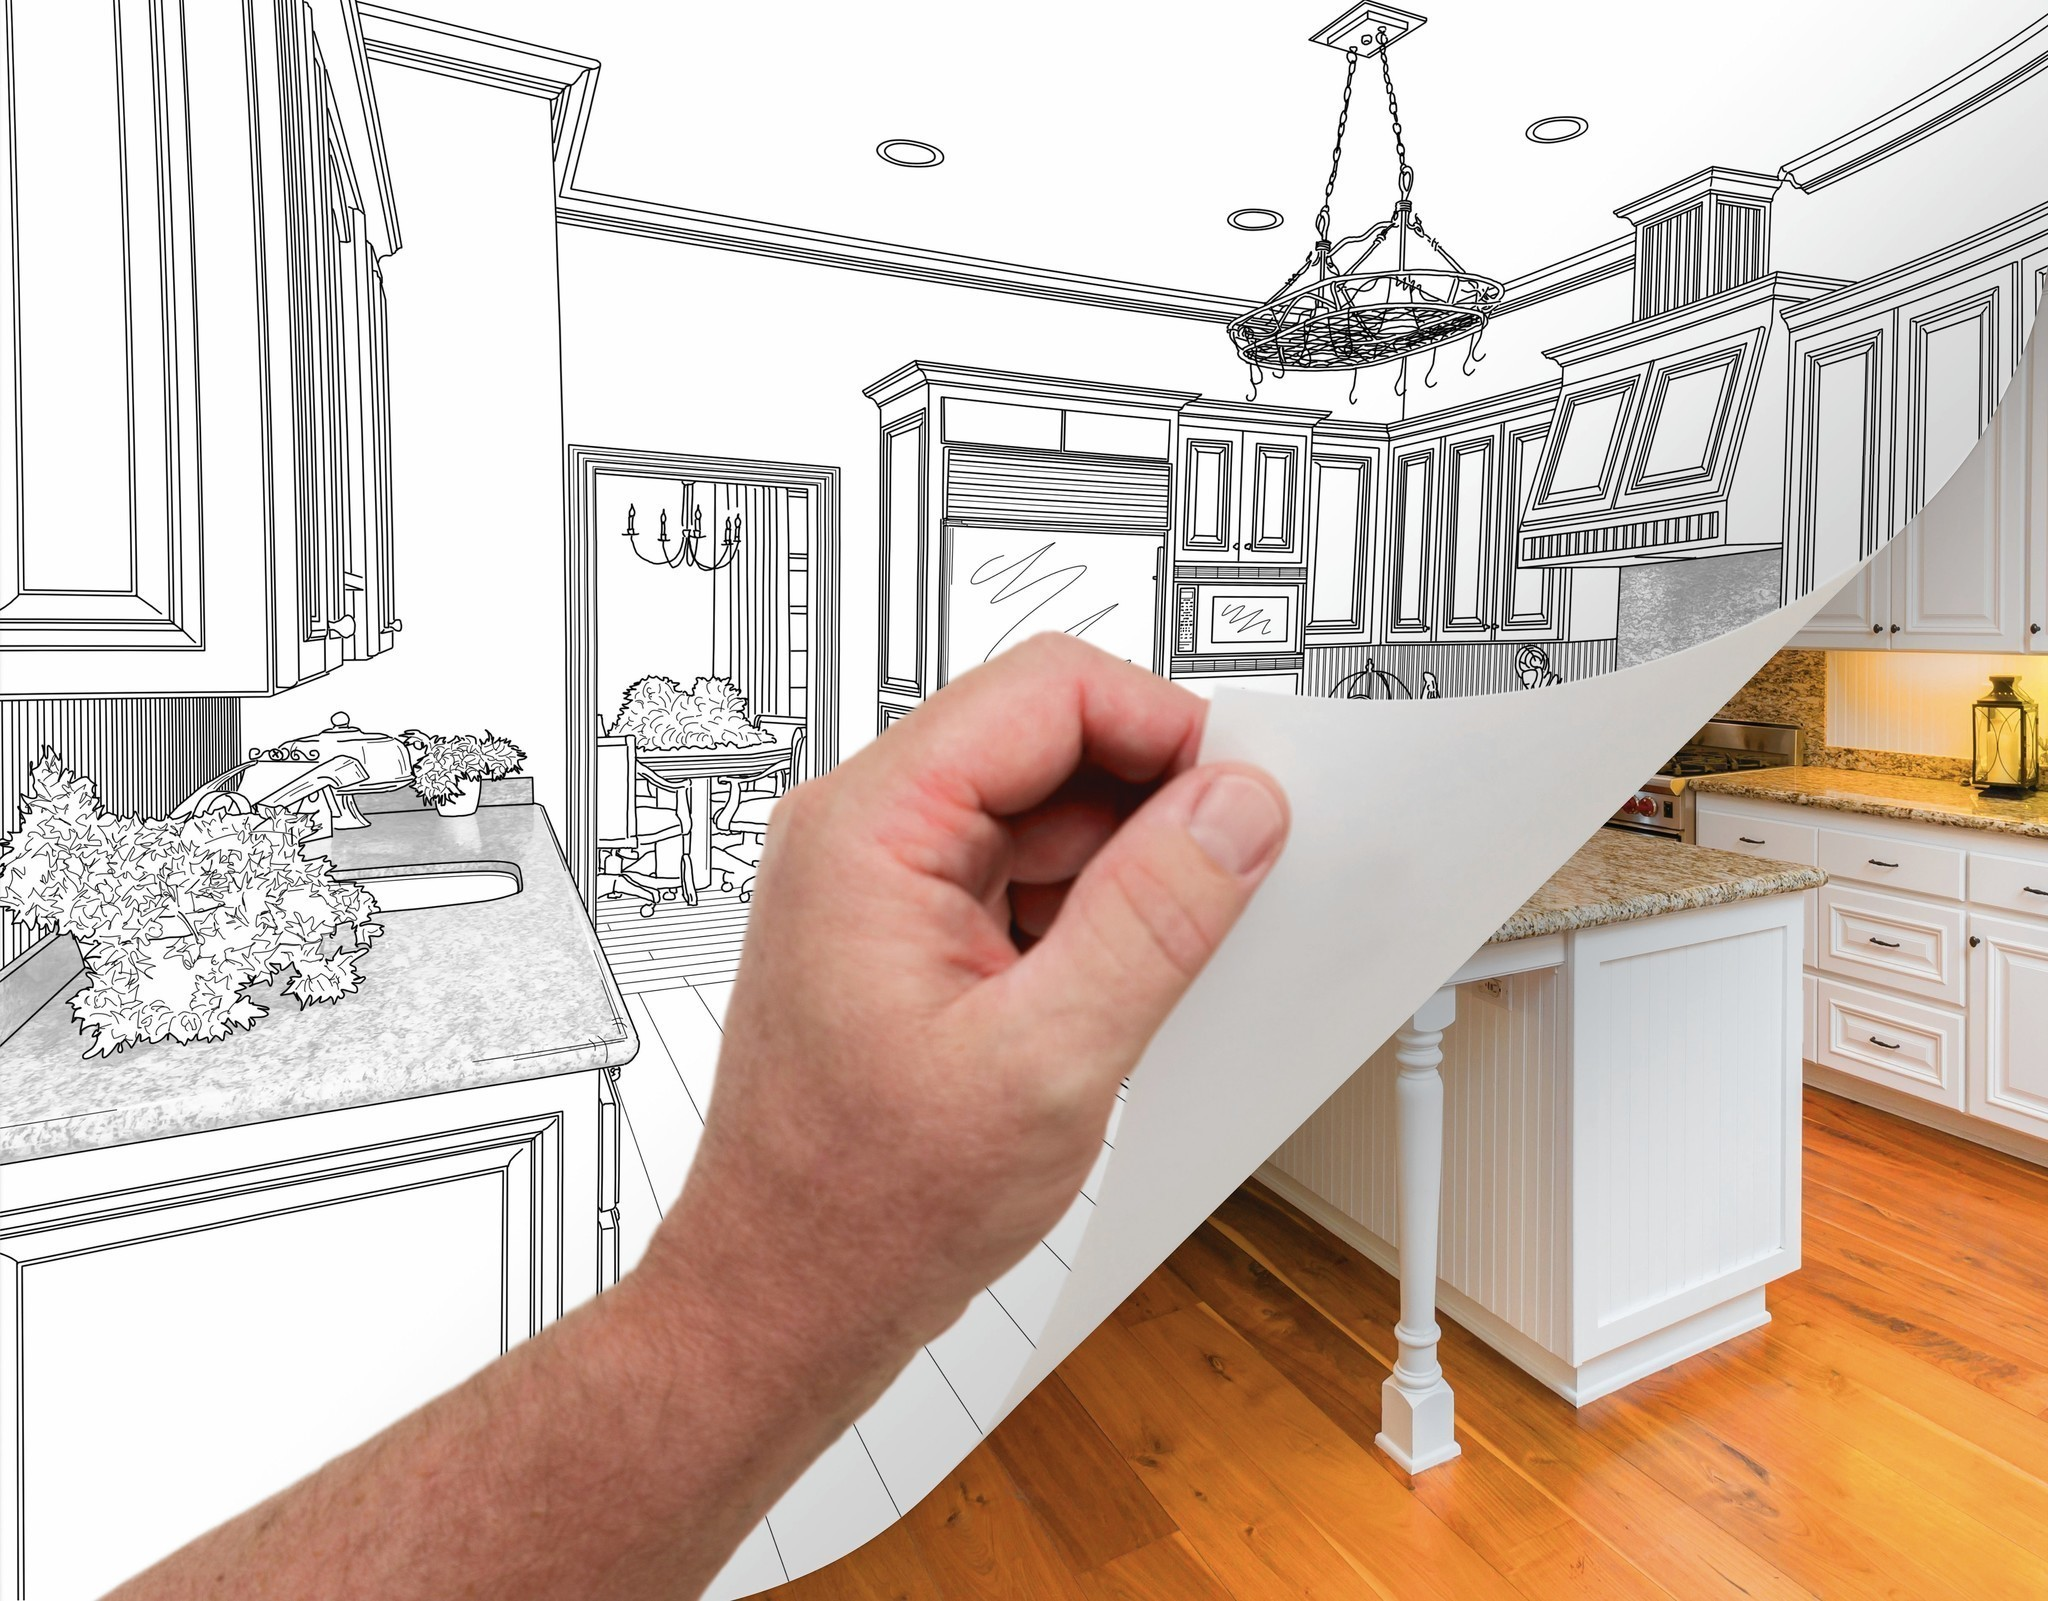 Where to save where to splurge in kitchen remodel